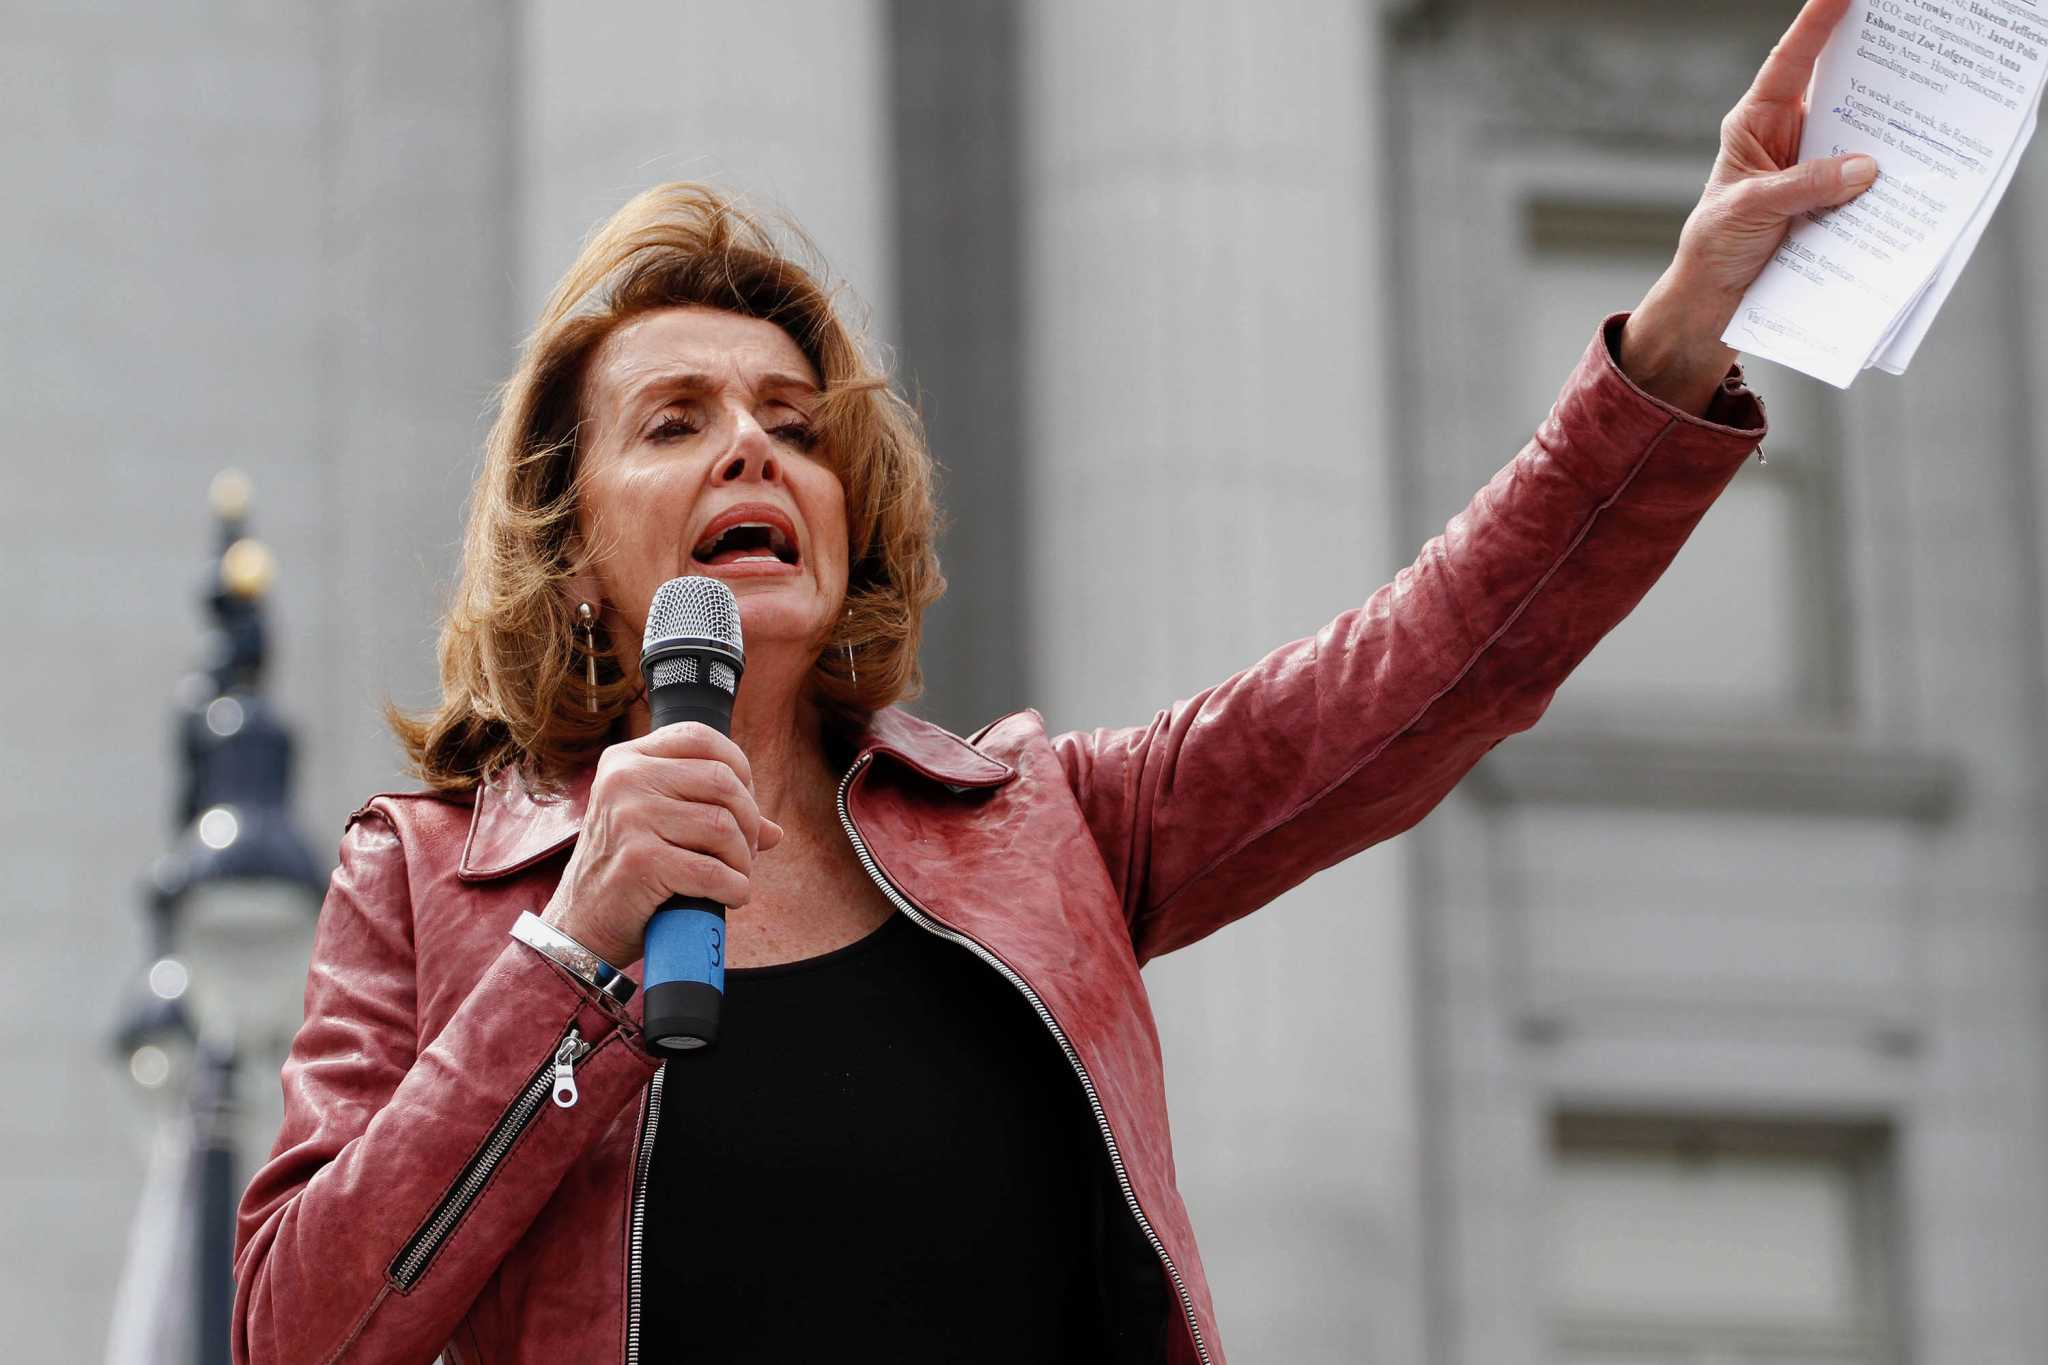 Nancy Pelosi speaking during the Tax March against Trump and him not releasing his tax statements on April 15, 2017, in San Francisco, Calif. (Mason Rockfellow/Xpress)